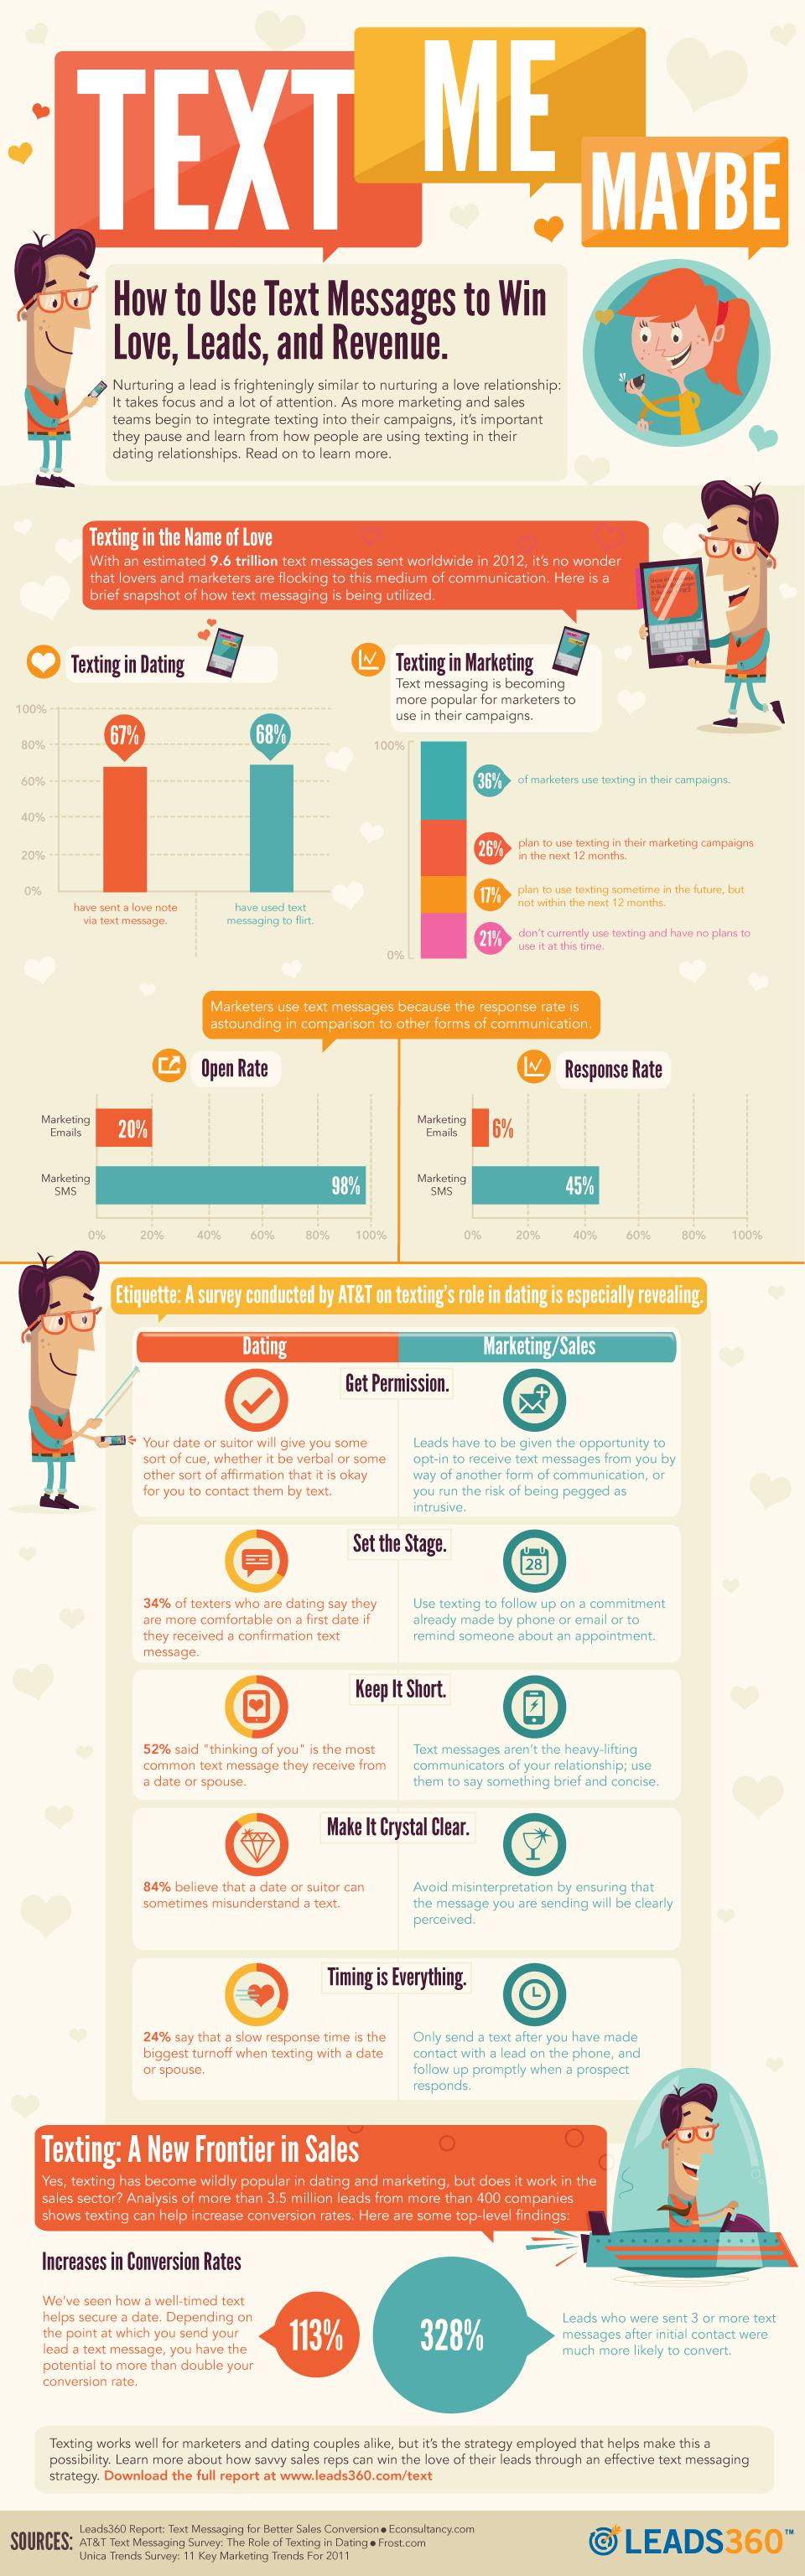 Infographie SMS et Infographie SMS et Amour